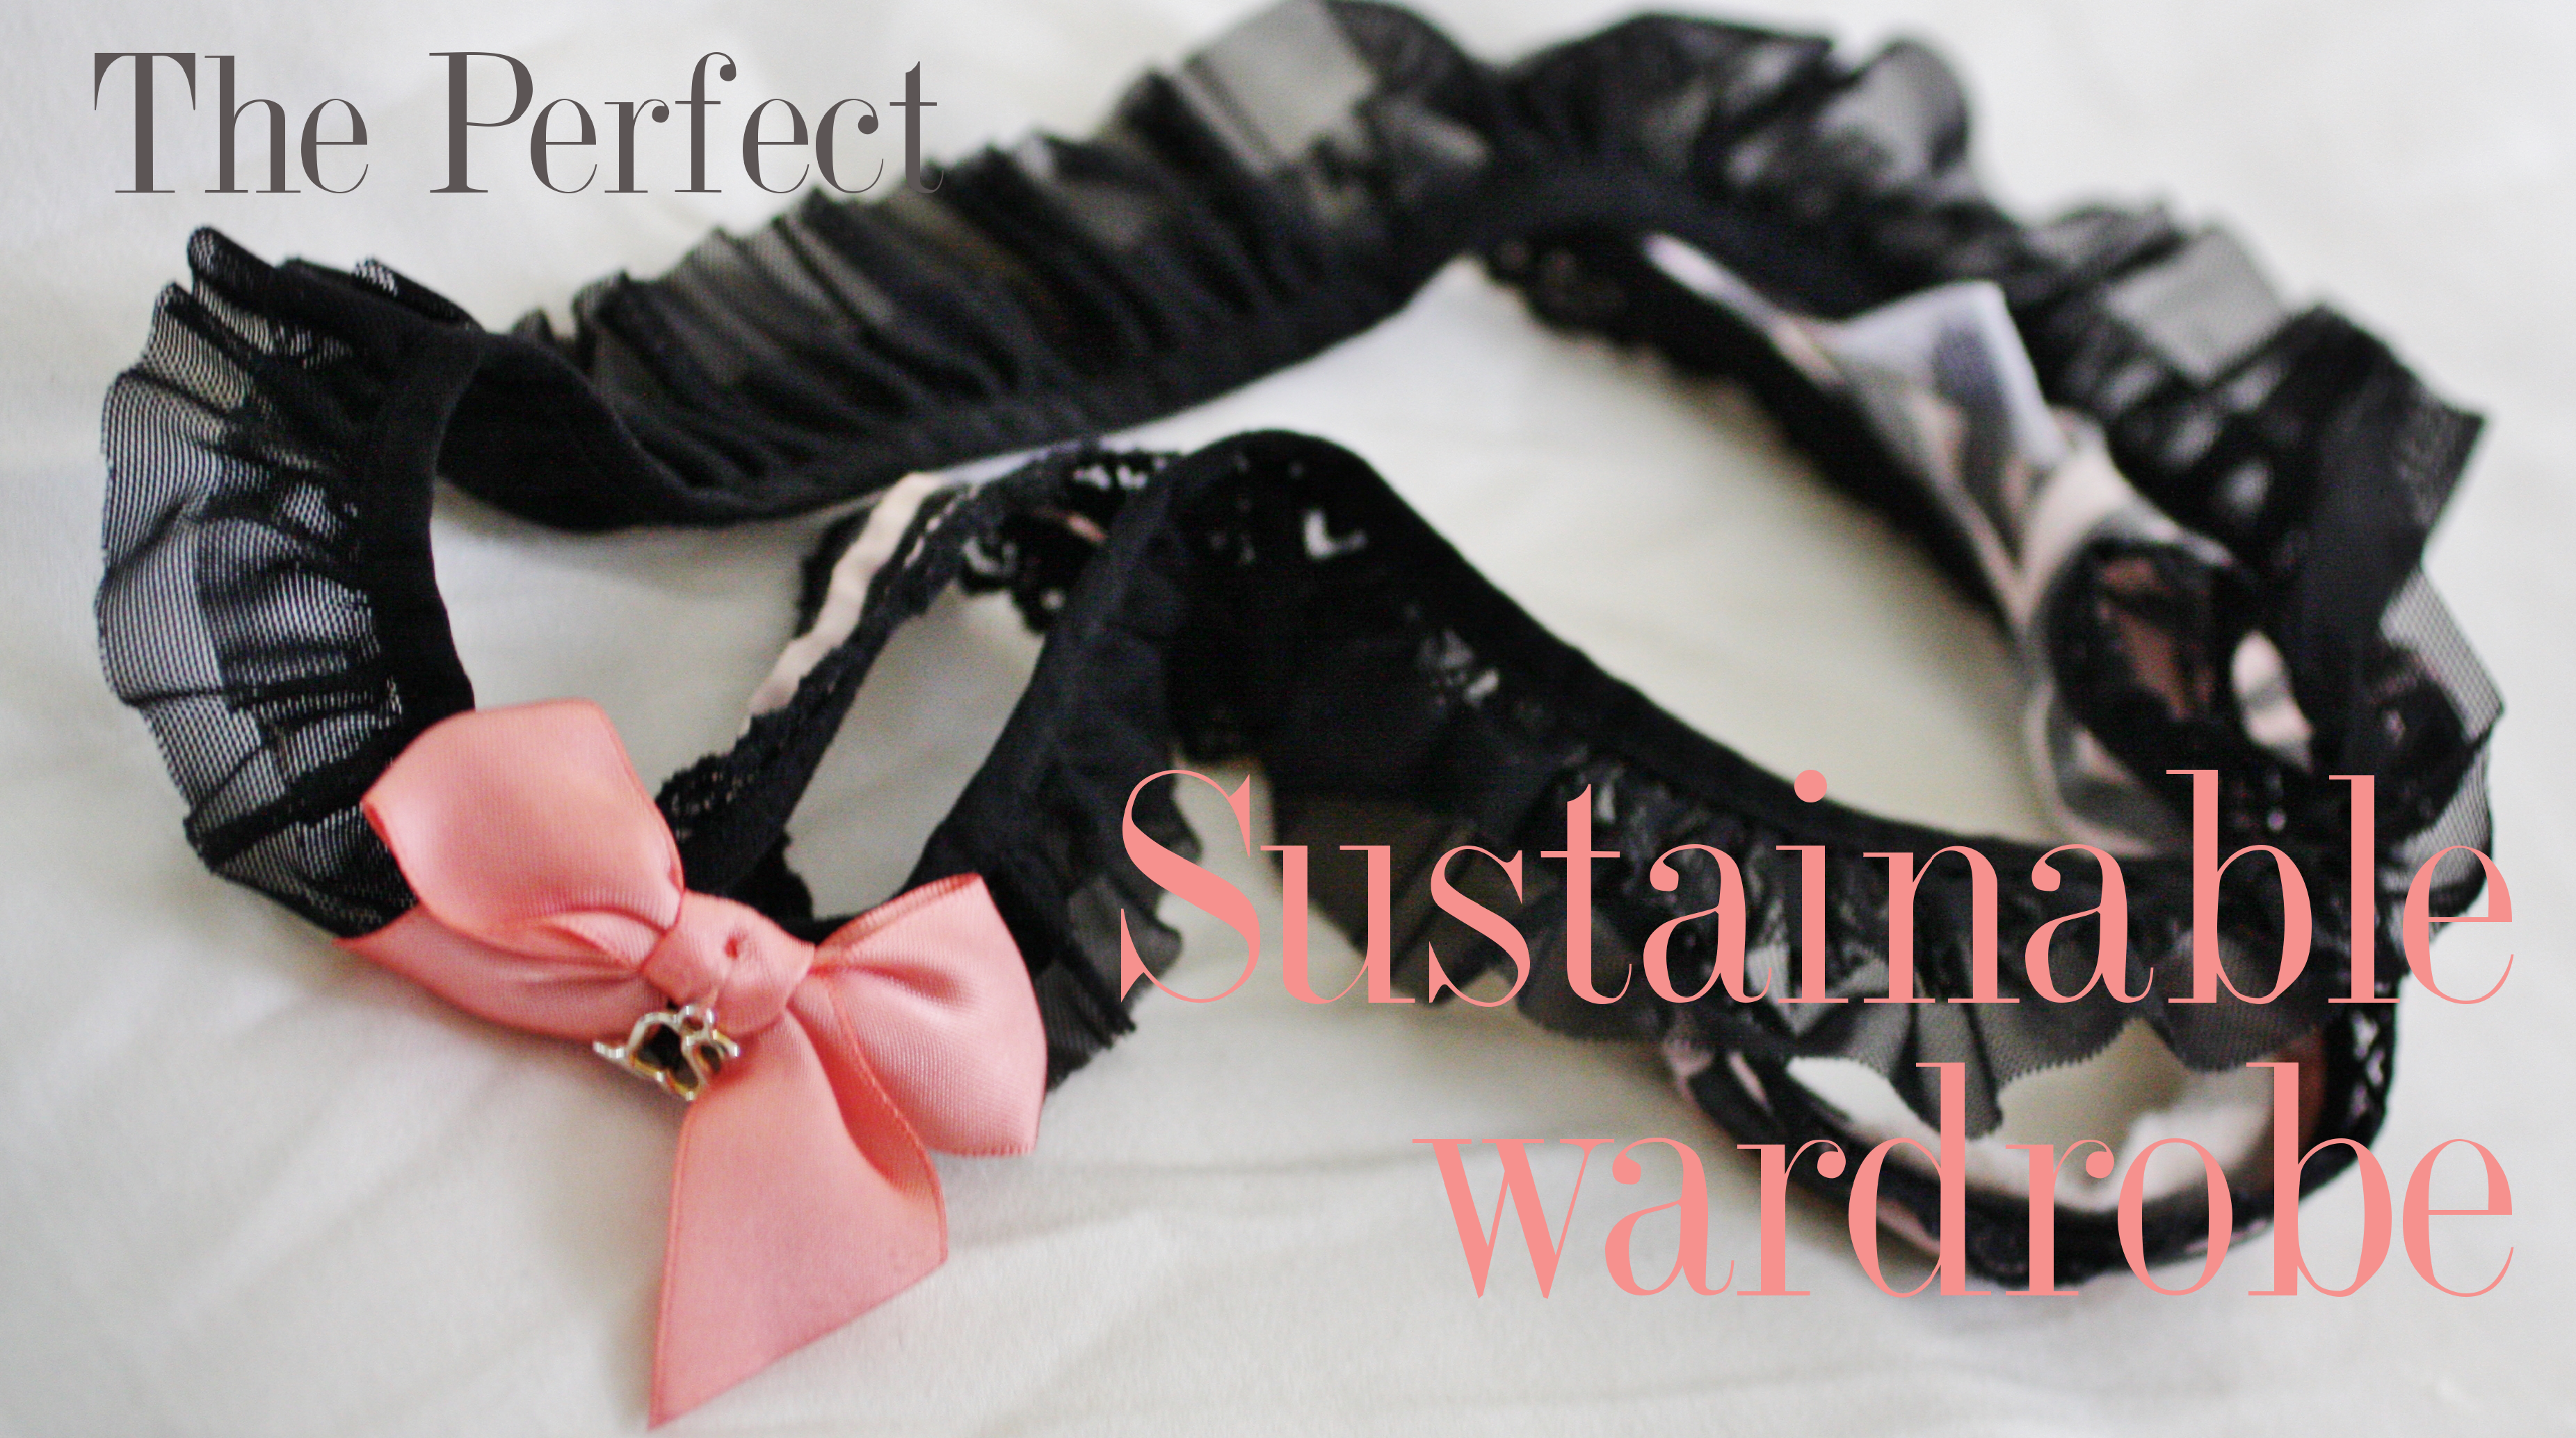 The Perfect Sustainable Wardrobe